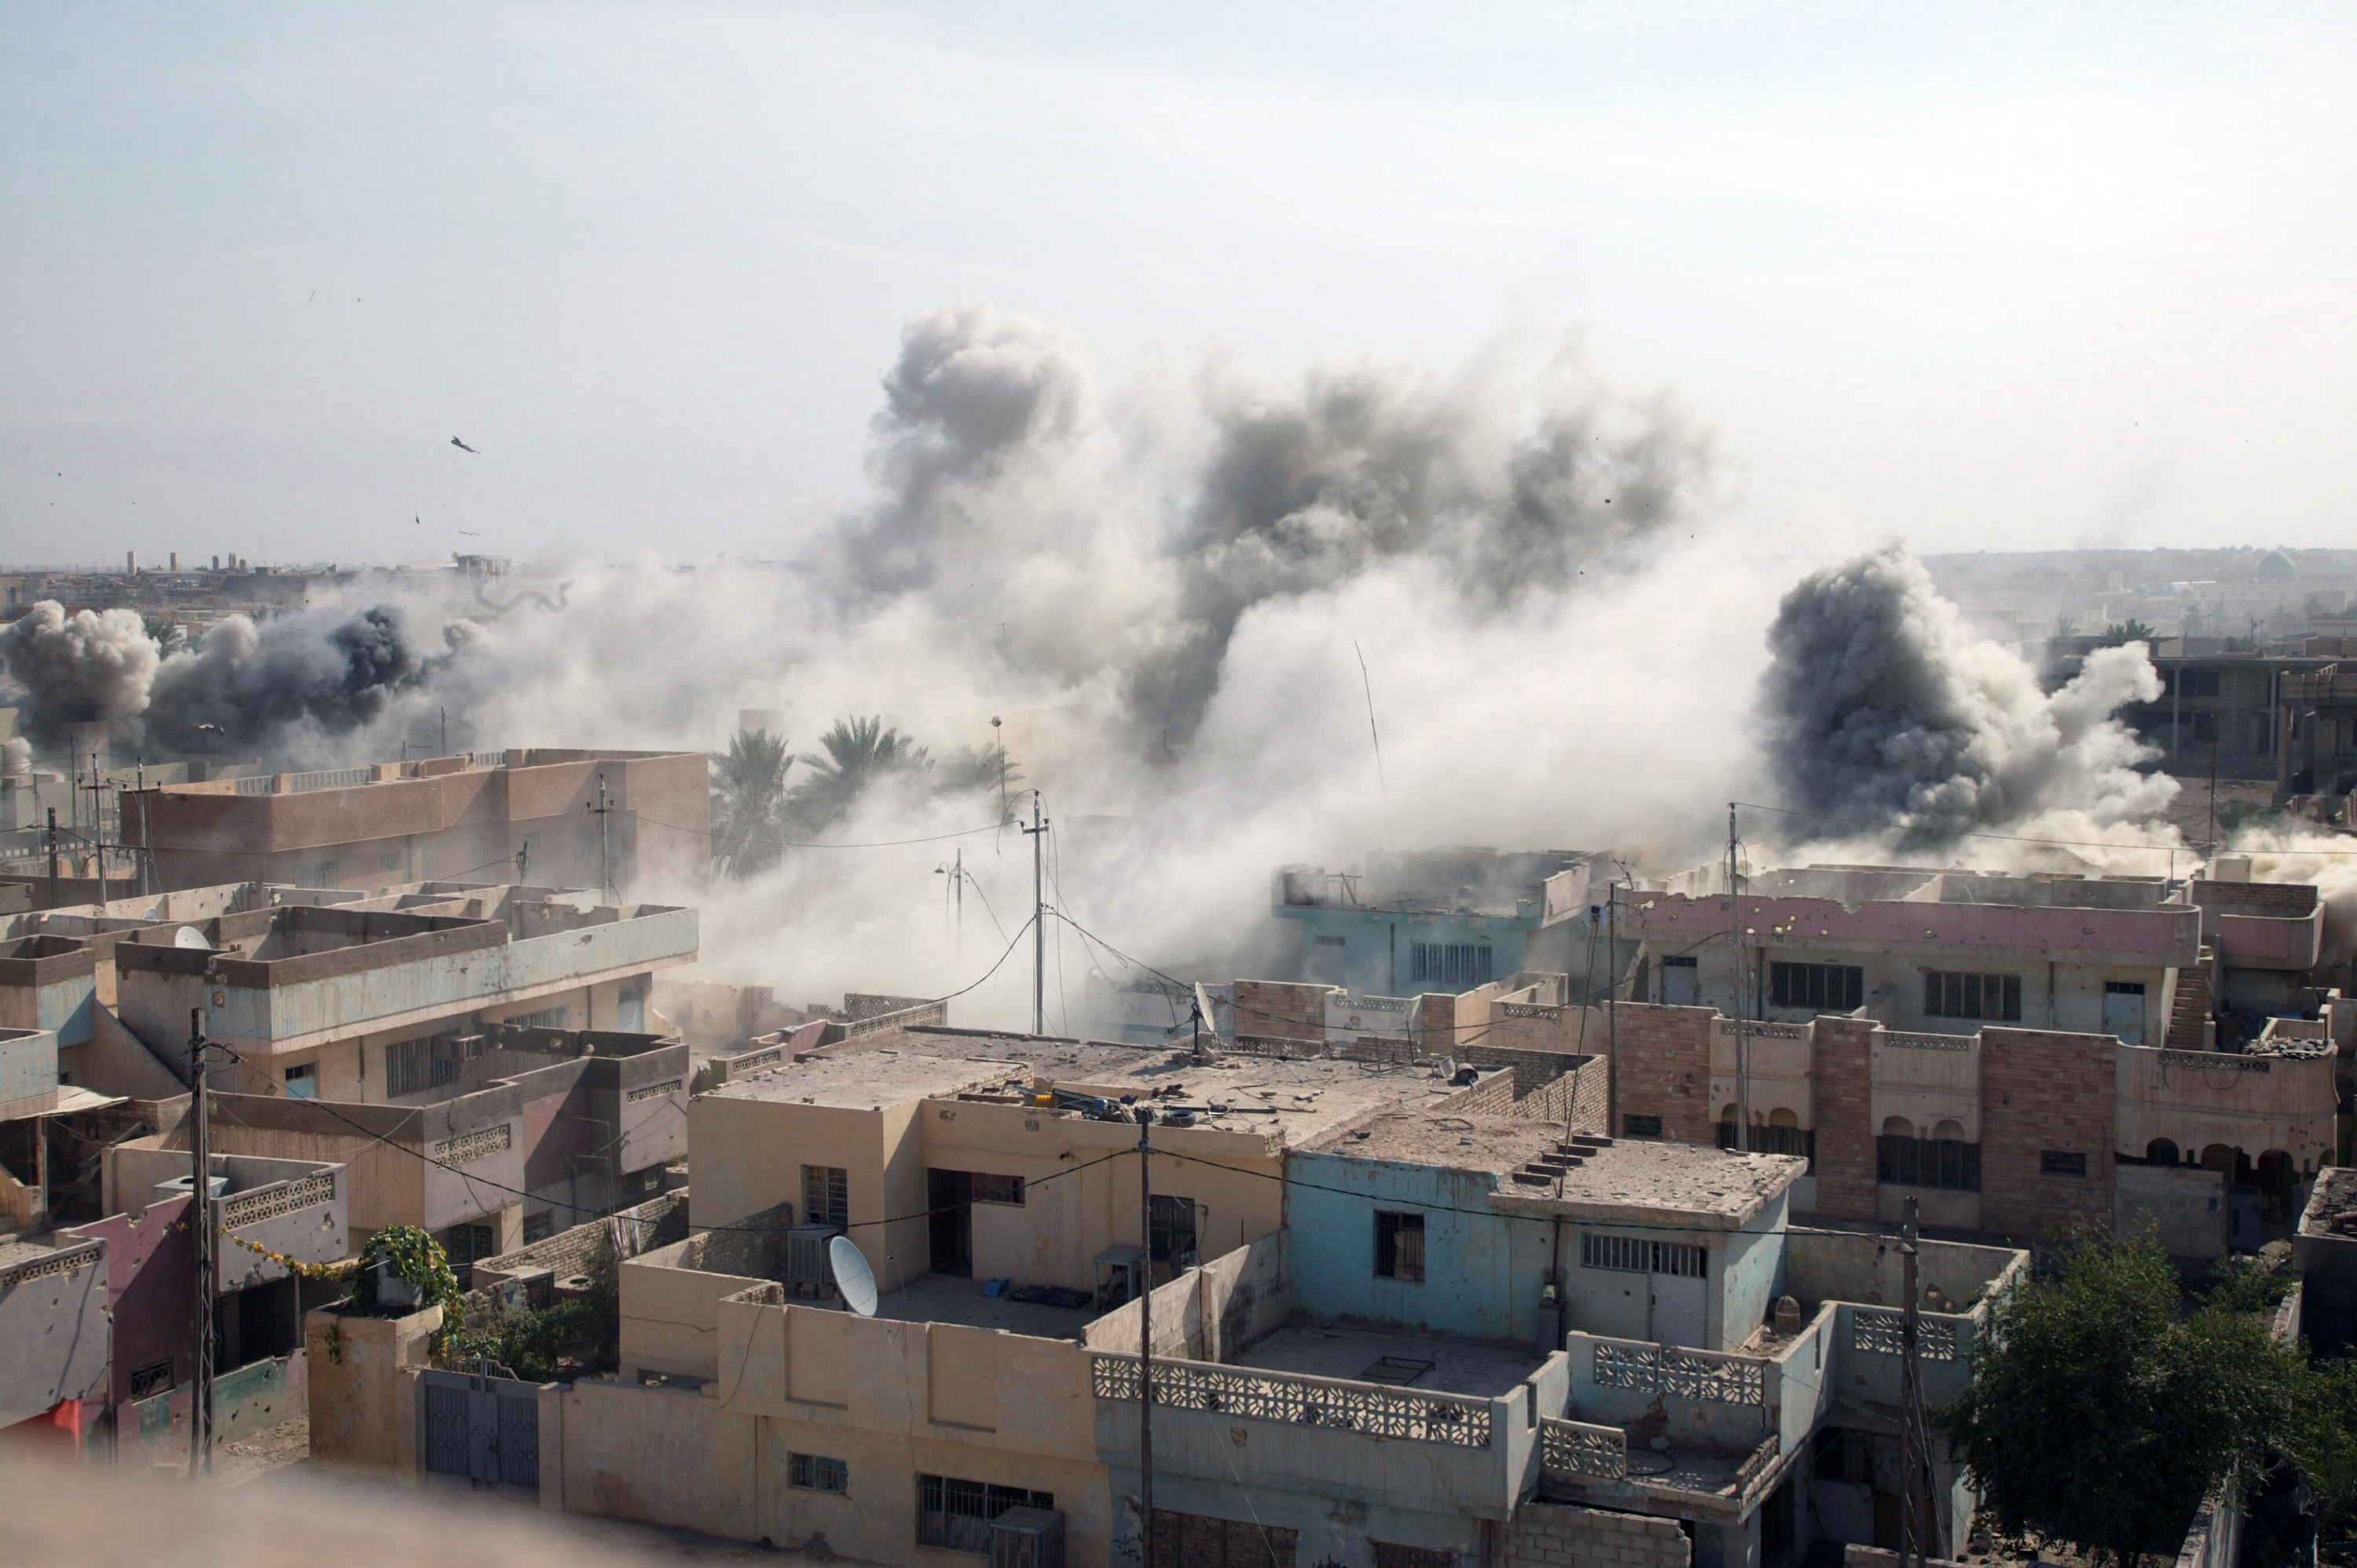 http://upload.wikimedia.org/wikipedia/commons/9/94/Fallujah_2004.JPG